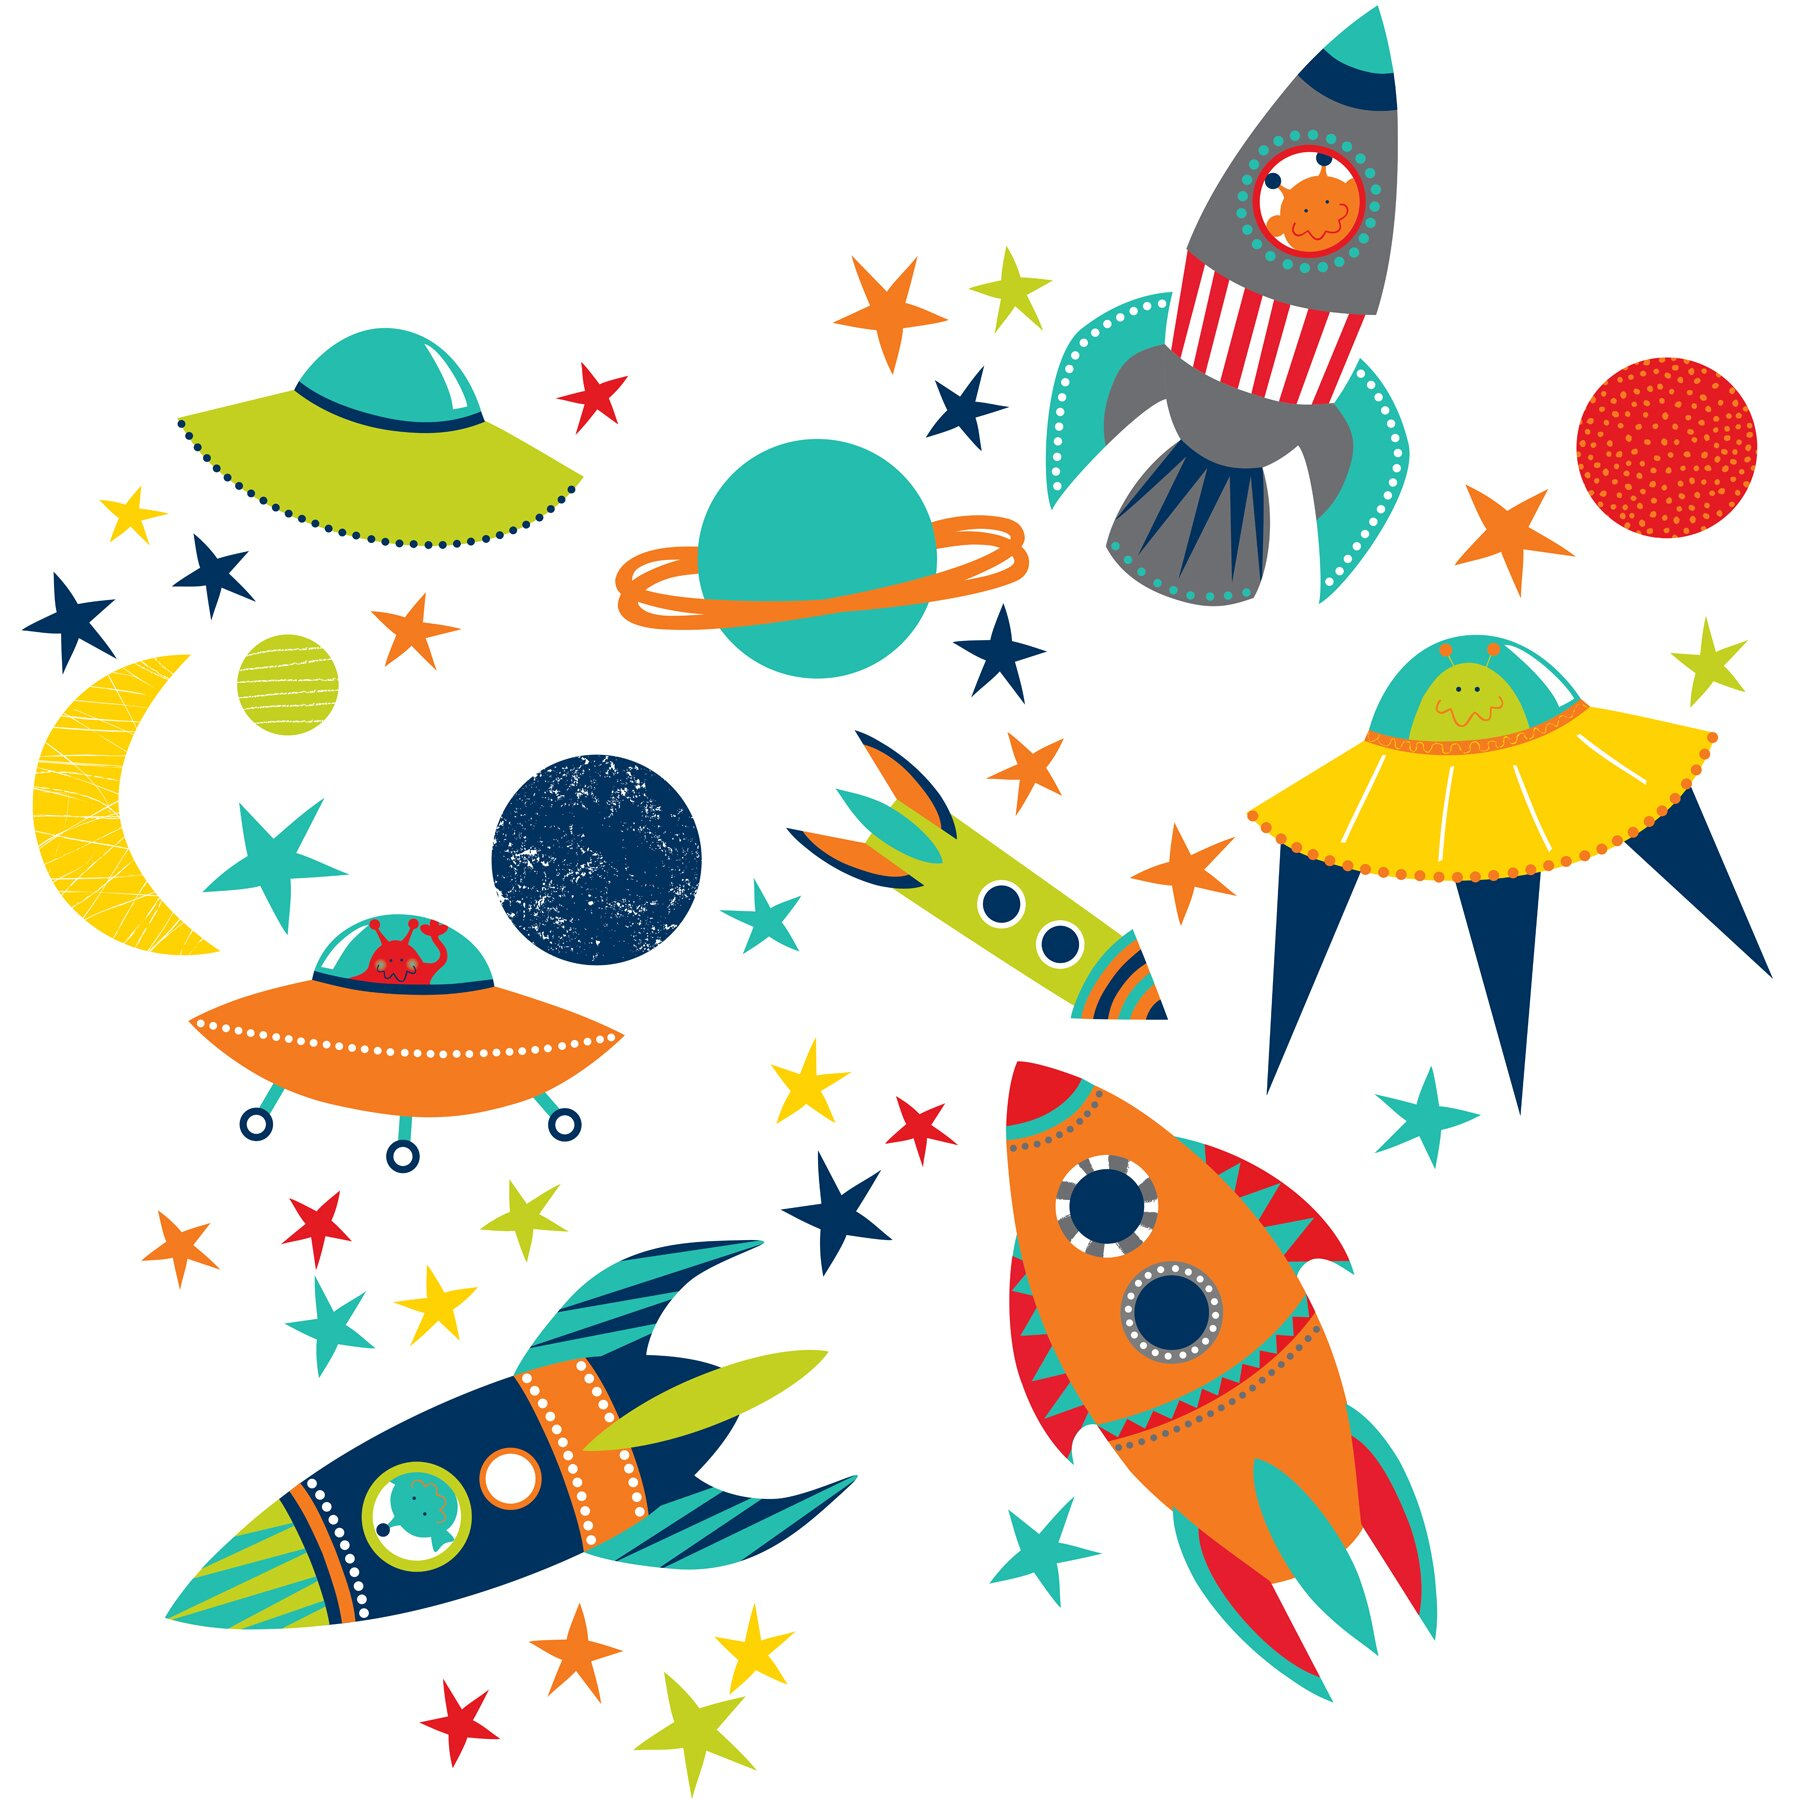 Wall Art Stickers Next Day Delivery : Wallpops wall art kit blast off decal reviews